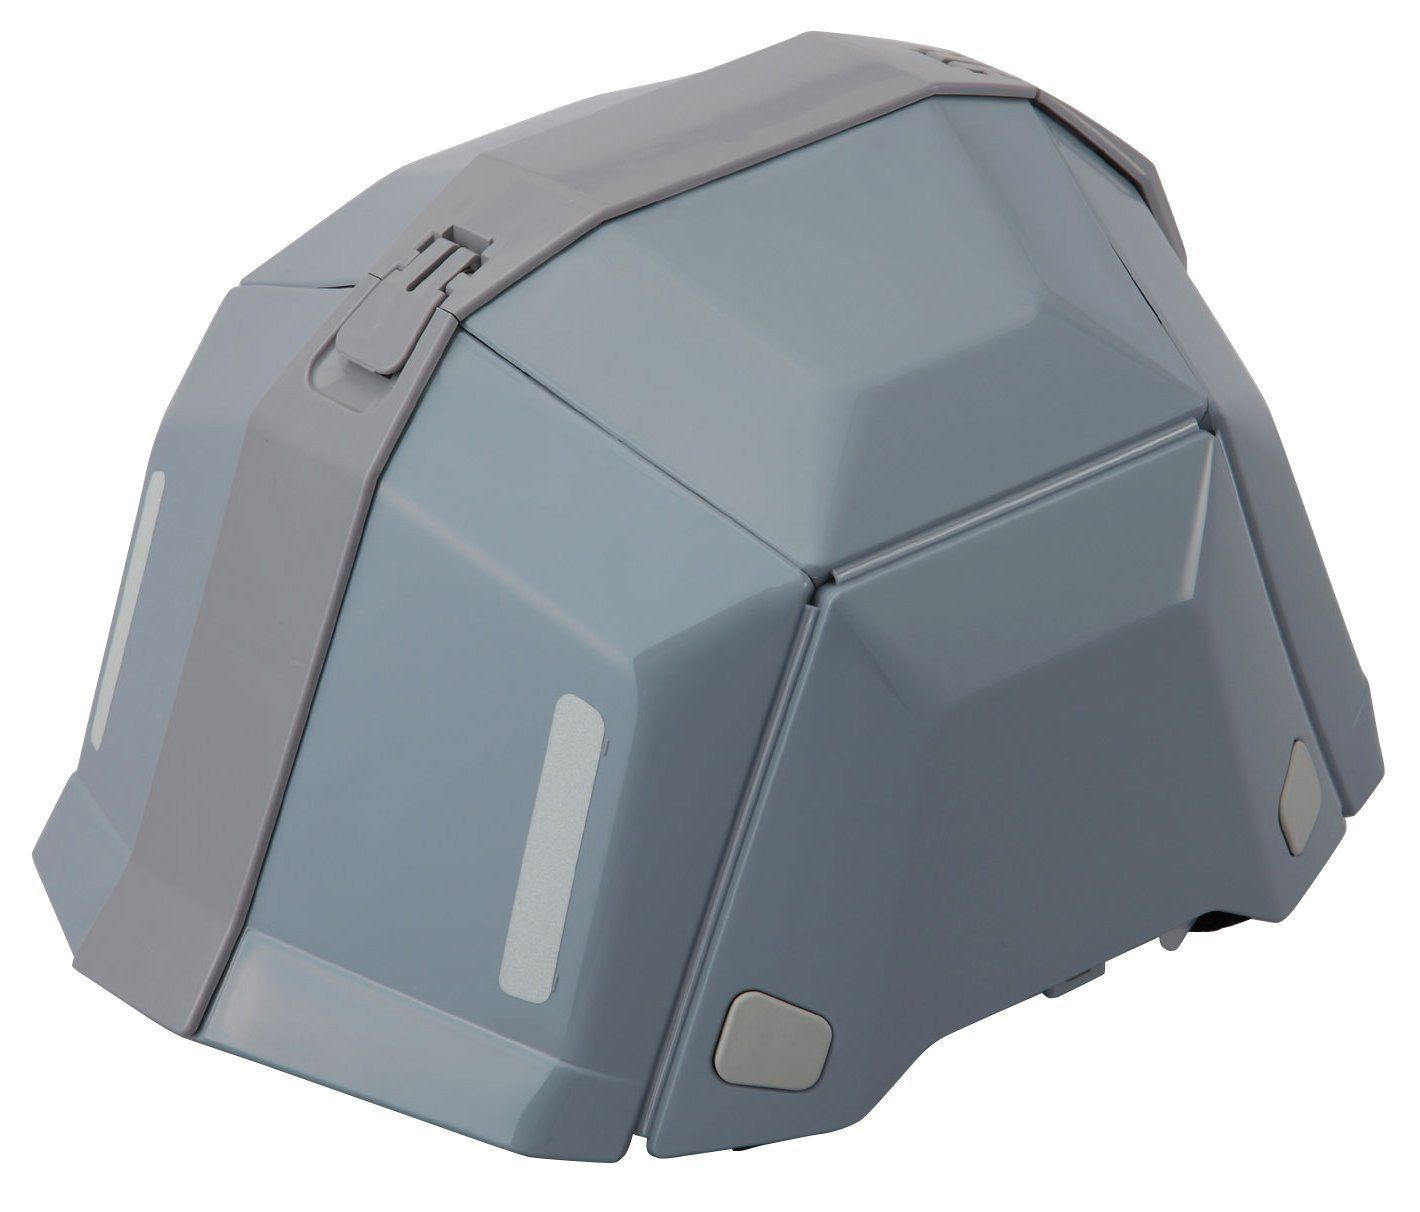 Bloom Ii No 101 Foldable Helmet By Toyo Safety